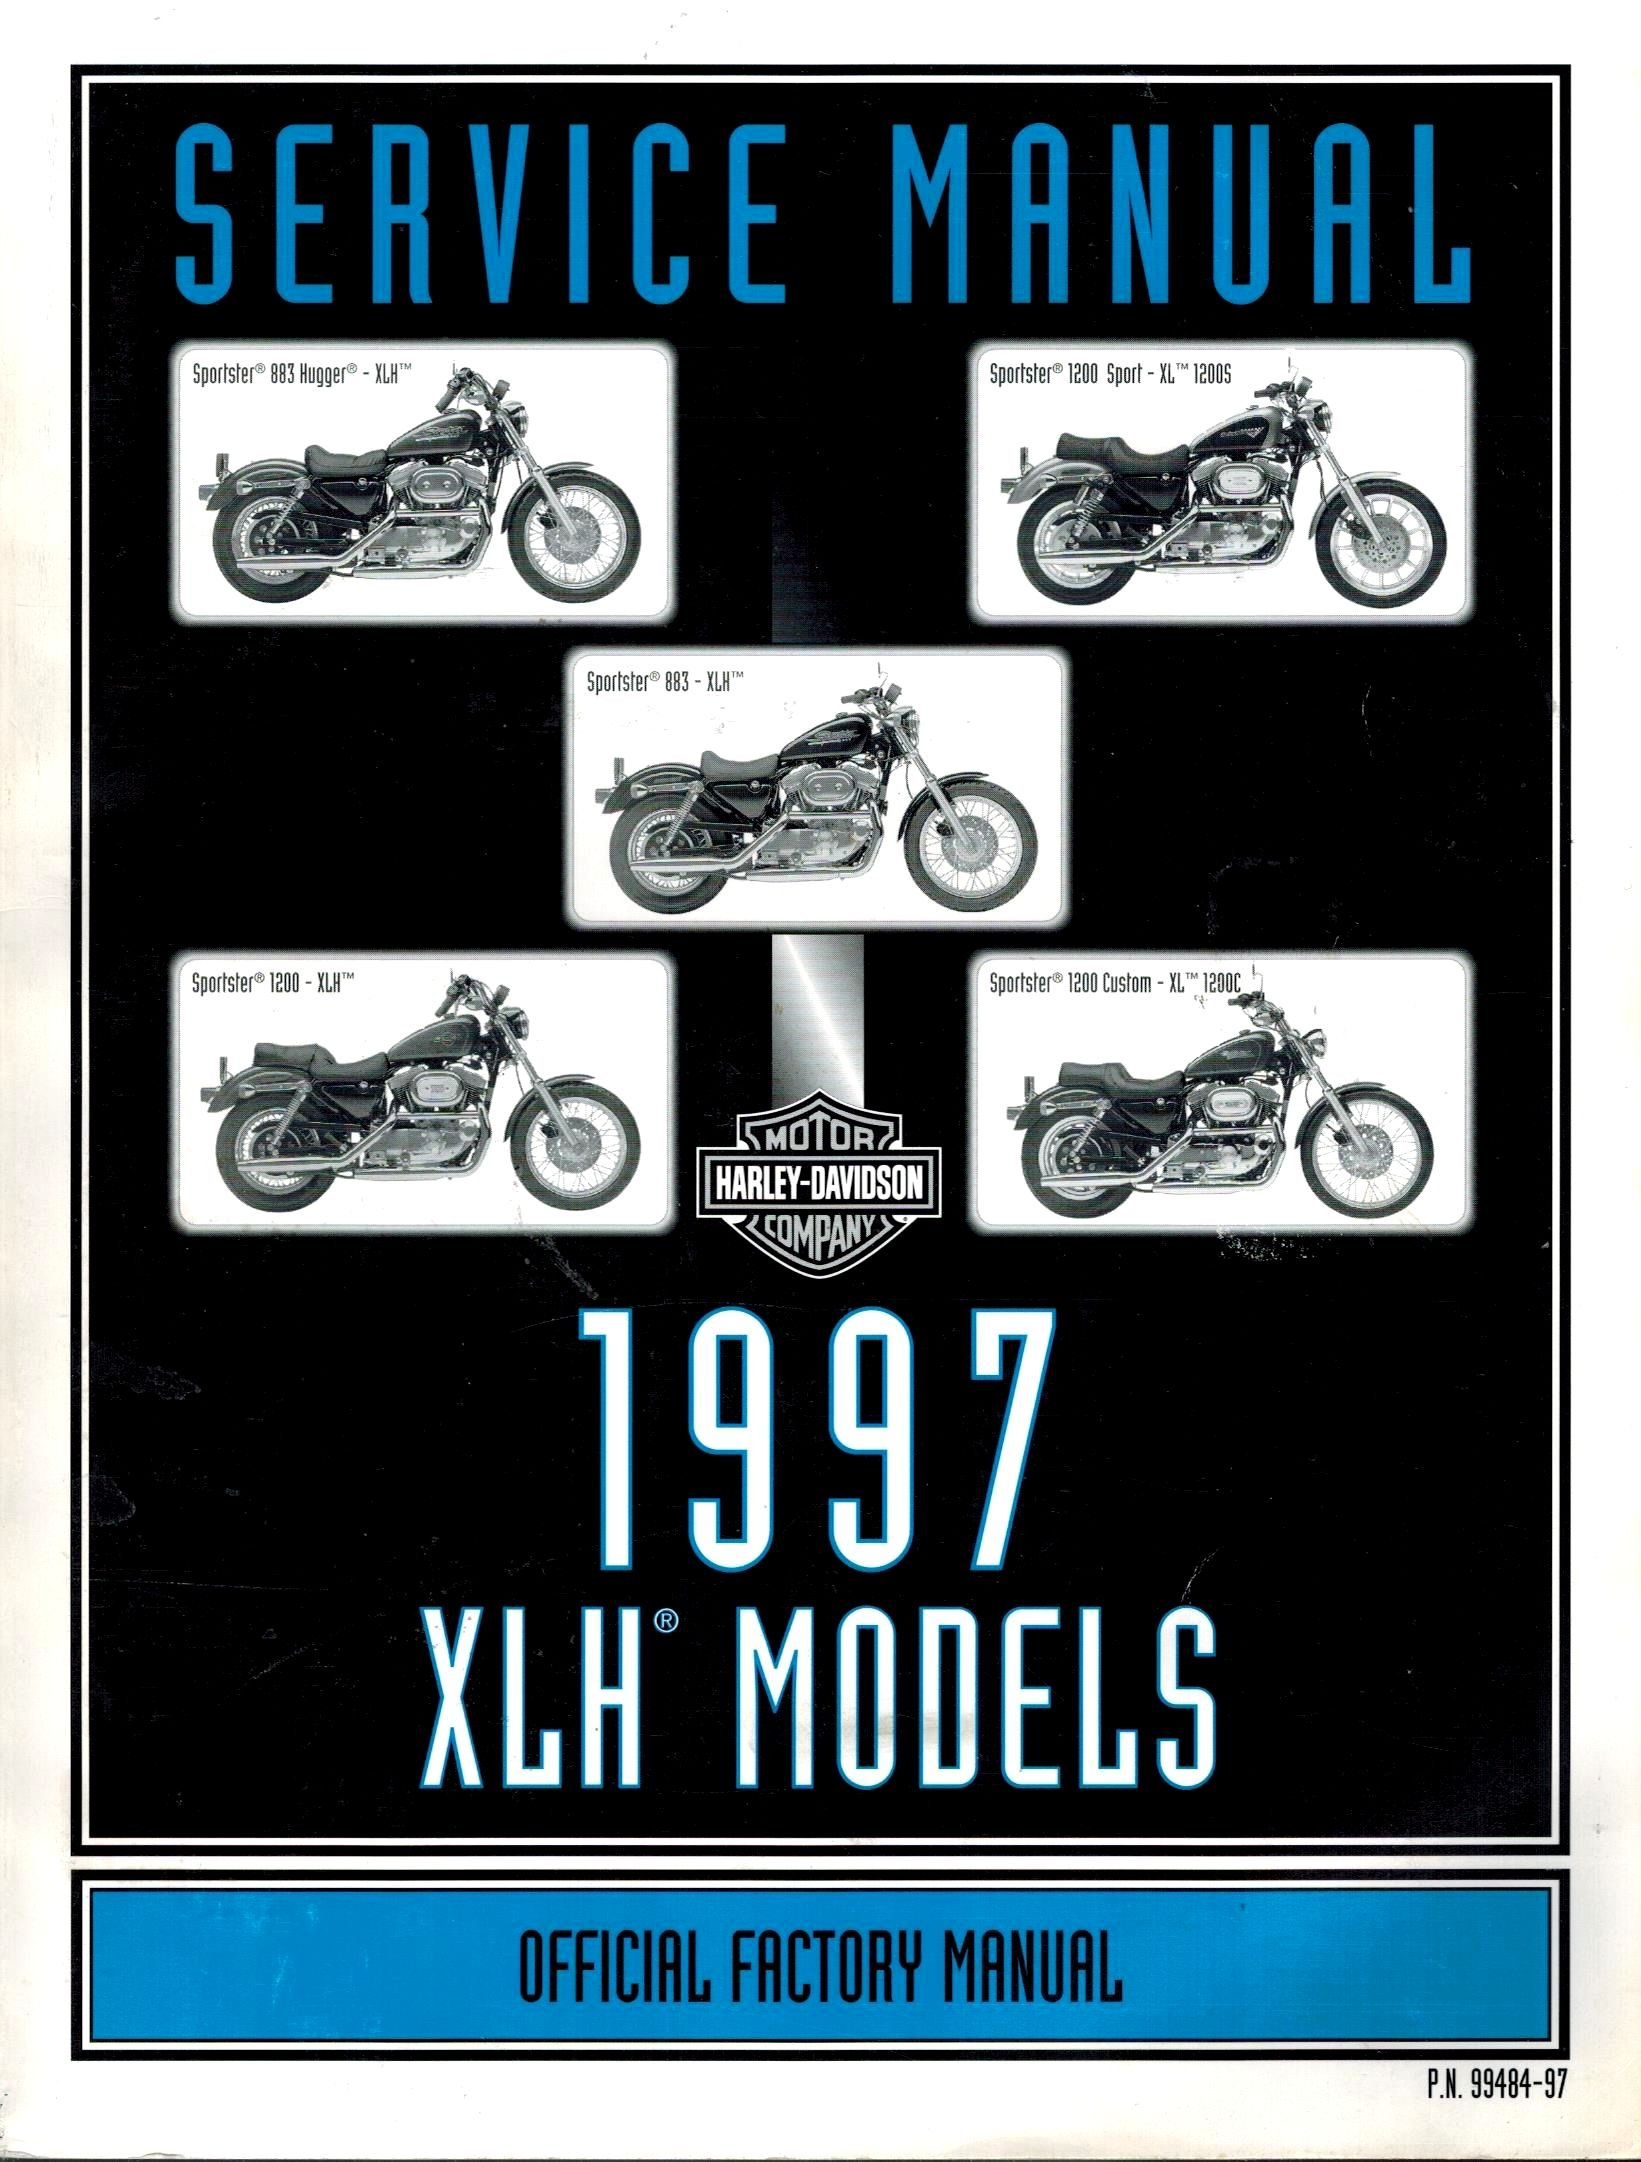 1997 Harley-Davidson XLH Models Official Factory Service Manual (P.N. 99484- 97): Harley Davidson: Amazon.com: Books